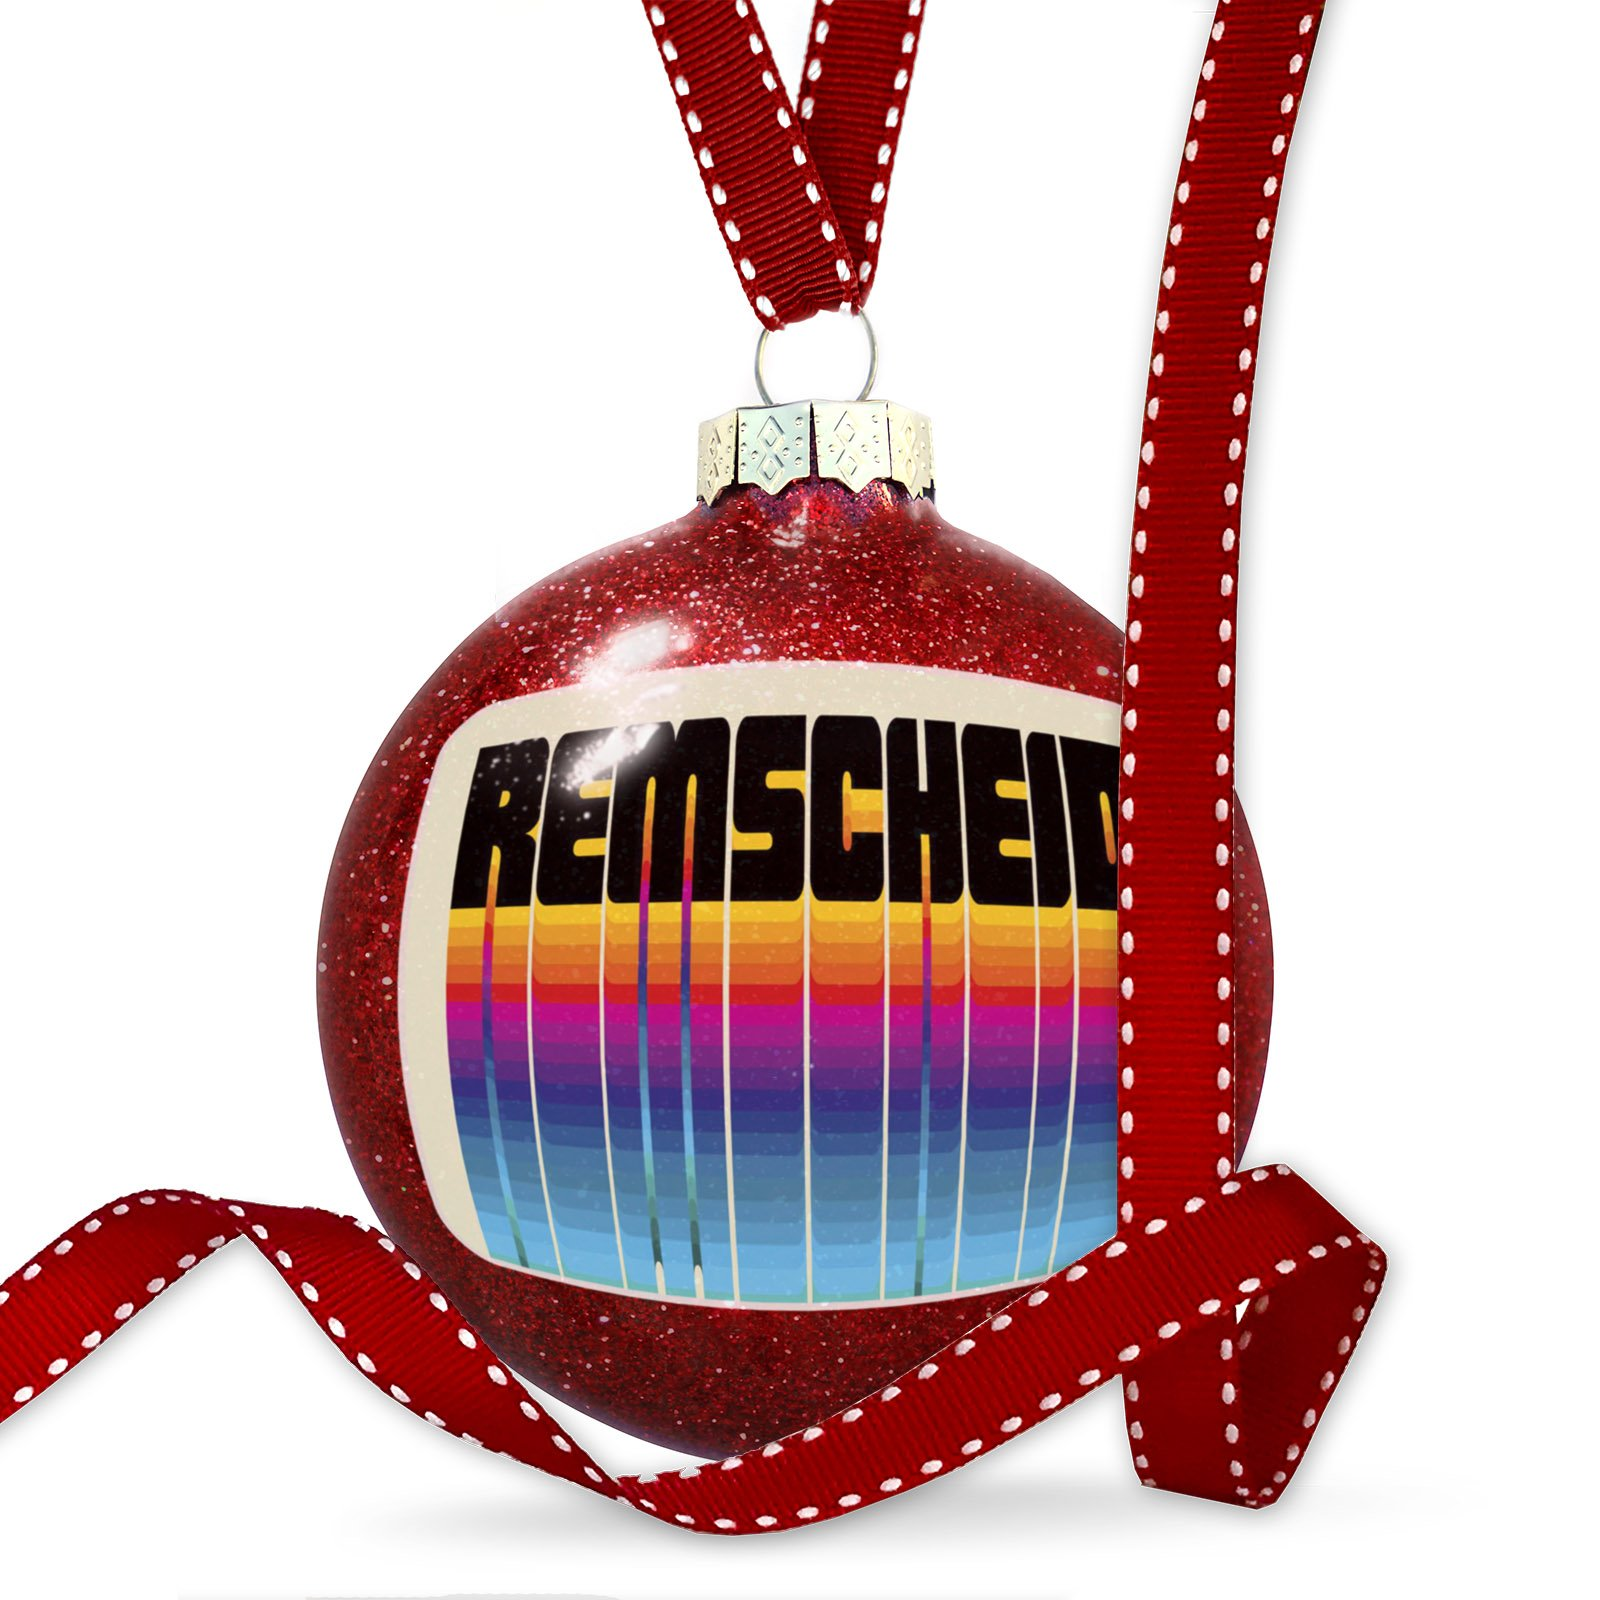 Christmas Decoration Retro Cites States Countries Remscheid Ornament